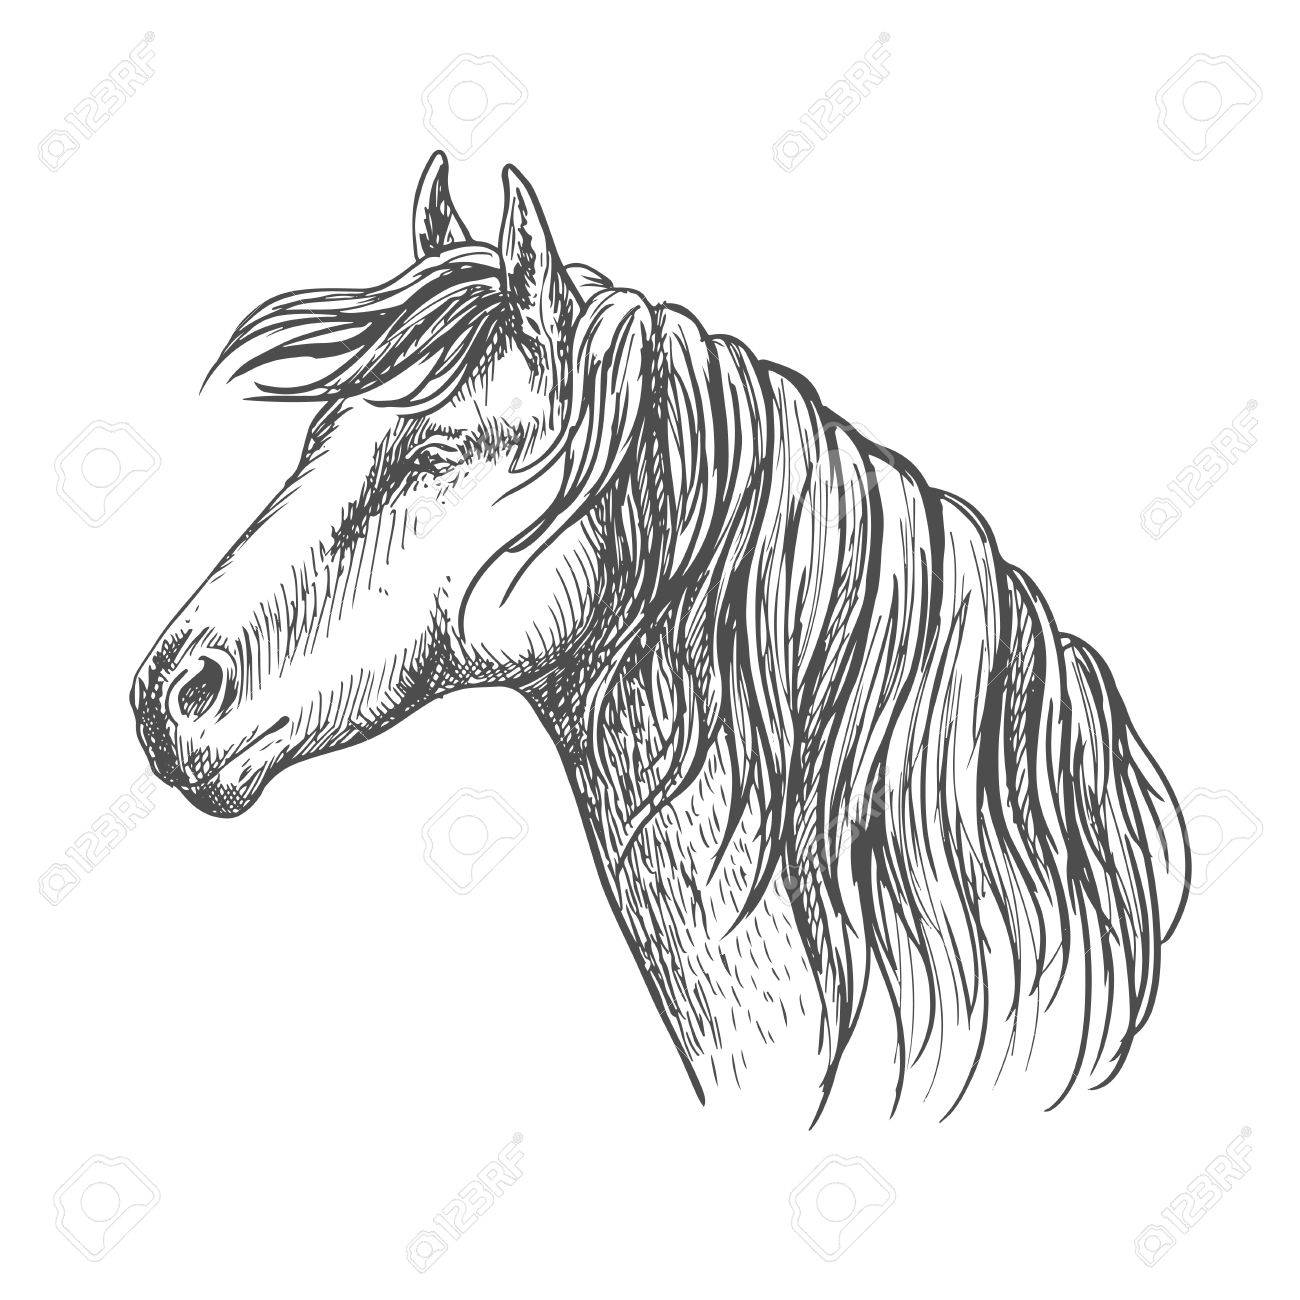 1300x1300 White Horse With Mane Along Neck. Mustang Stallion Sketch Portrait